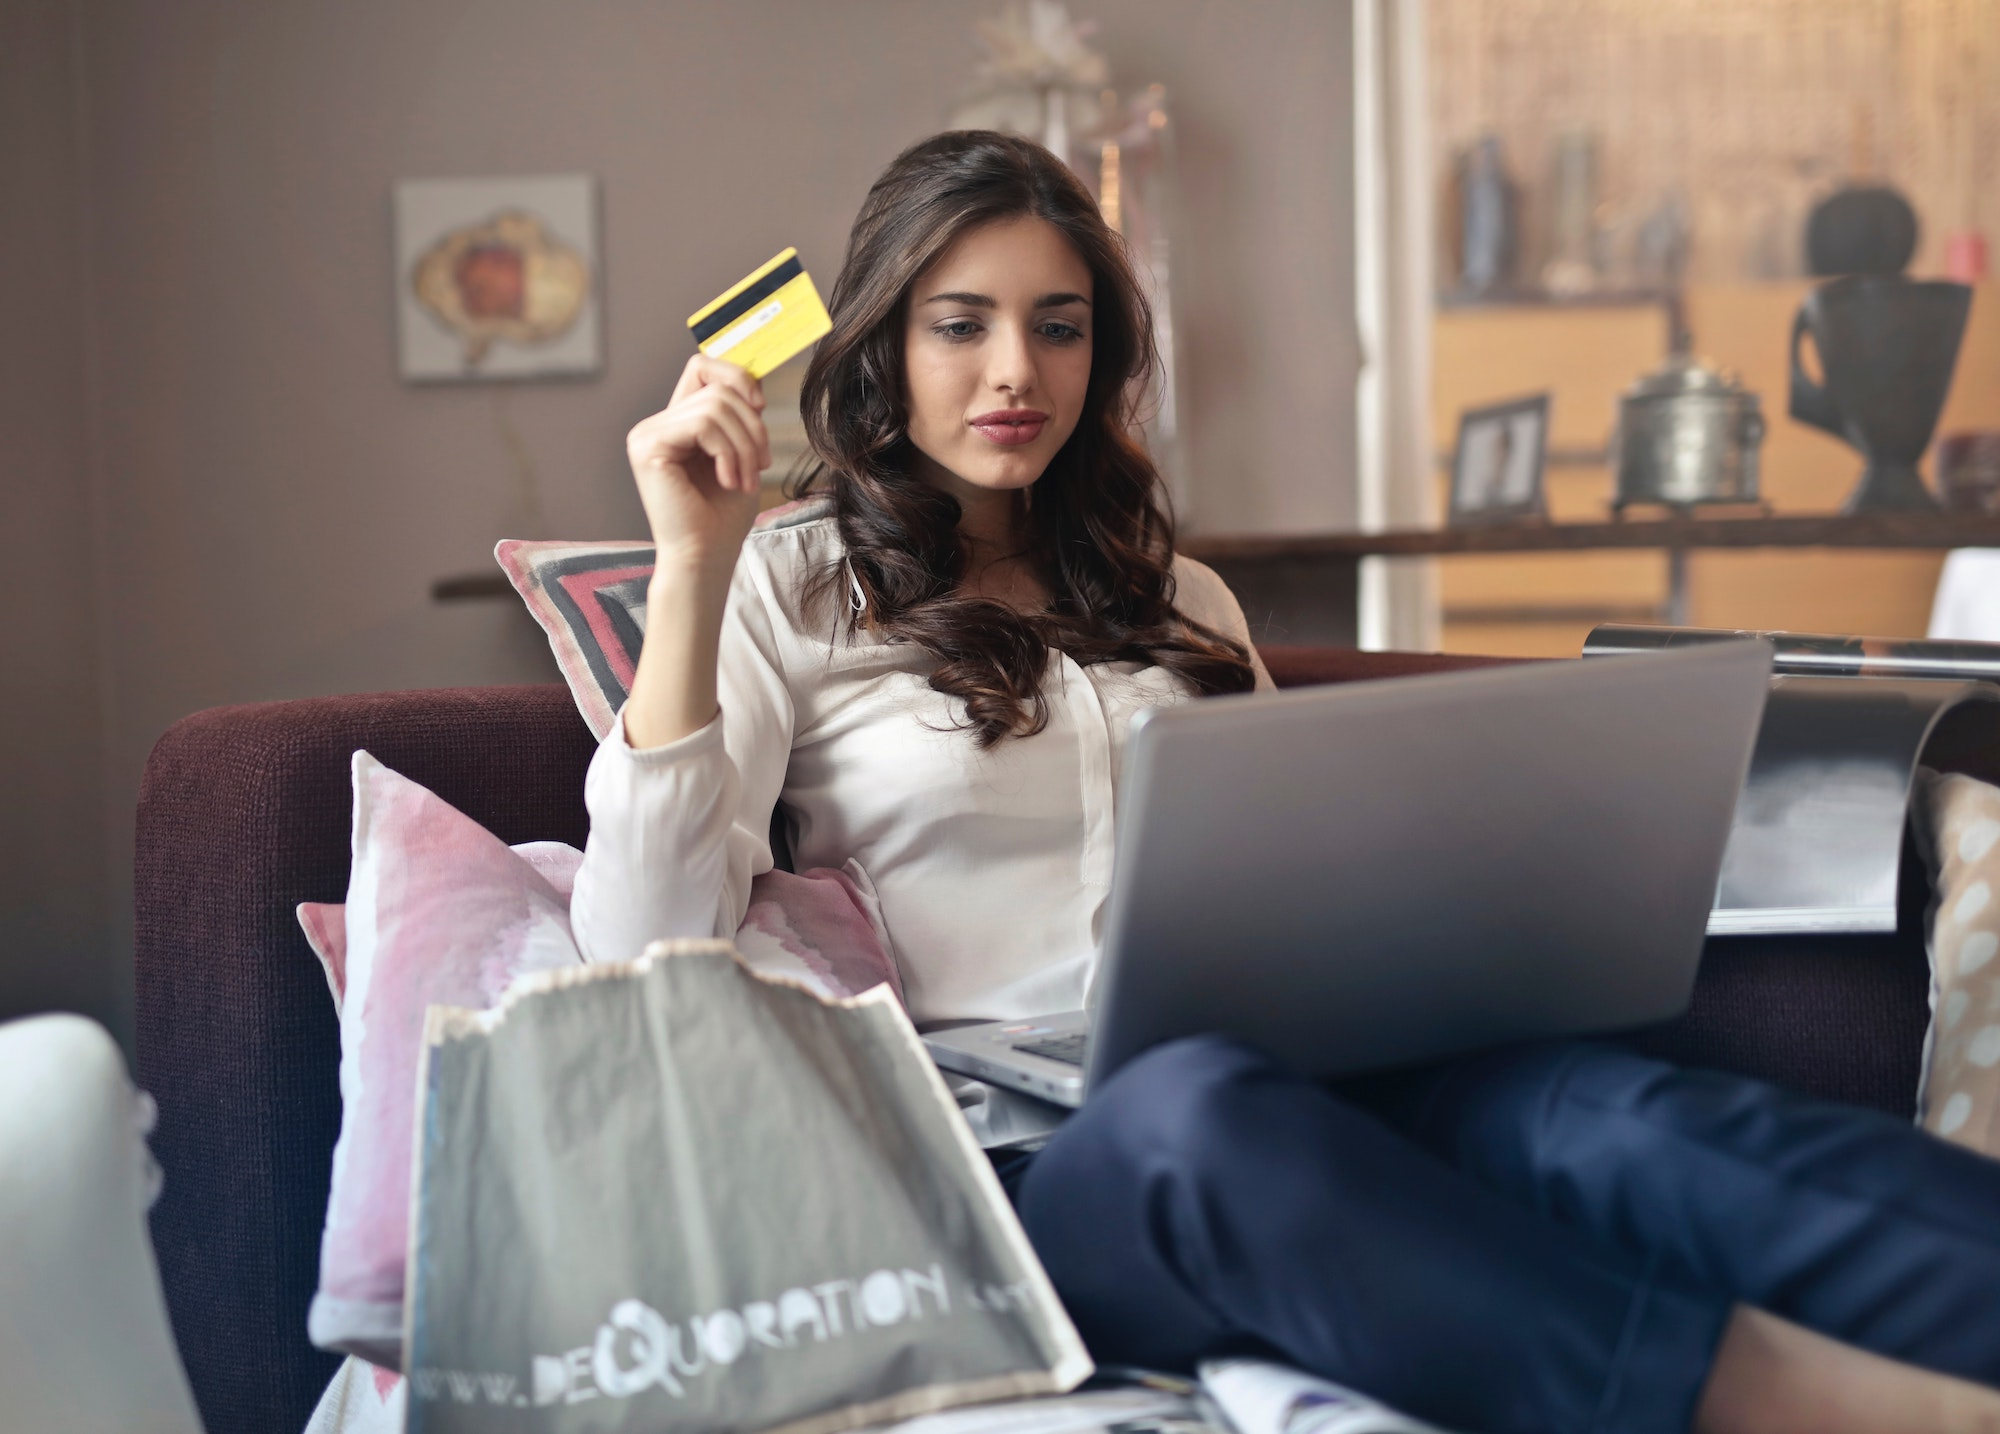 Woman buying something online with her credit card